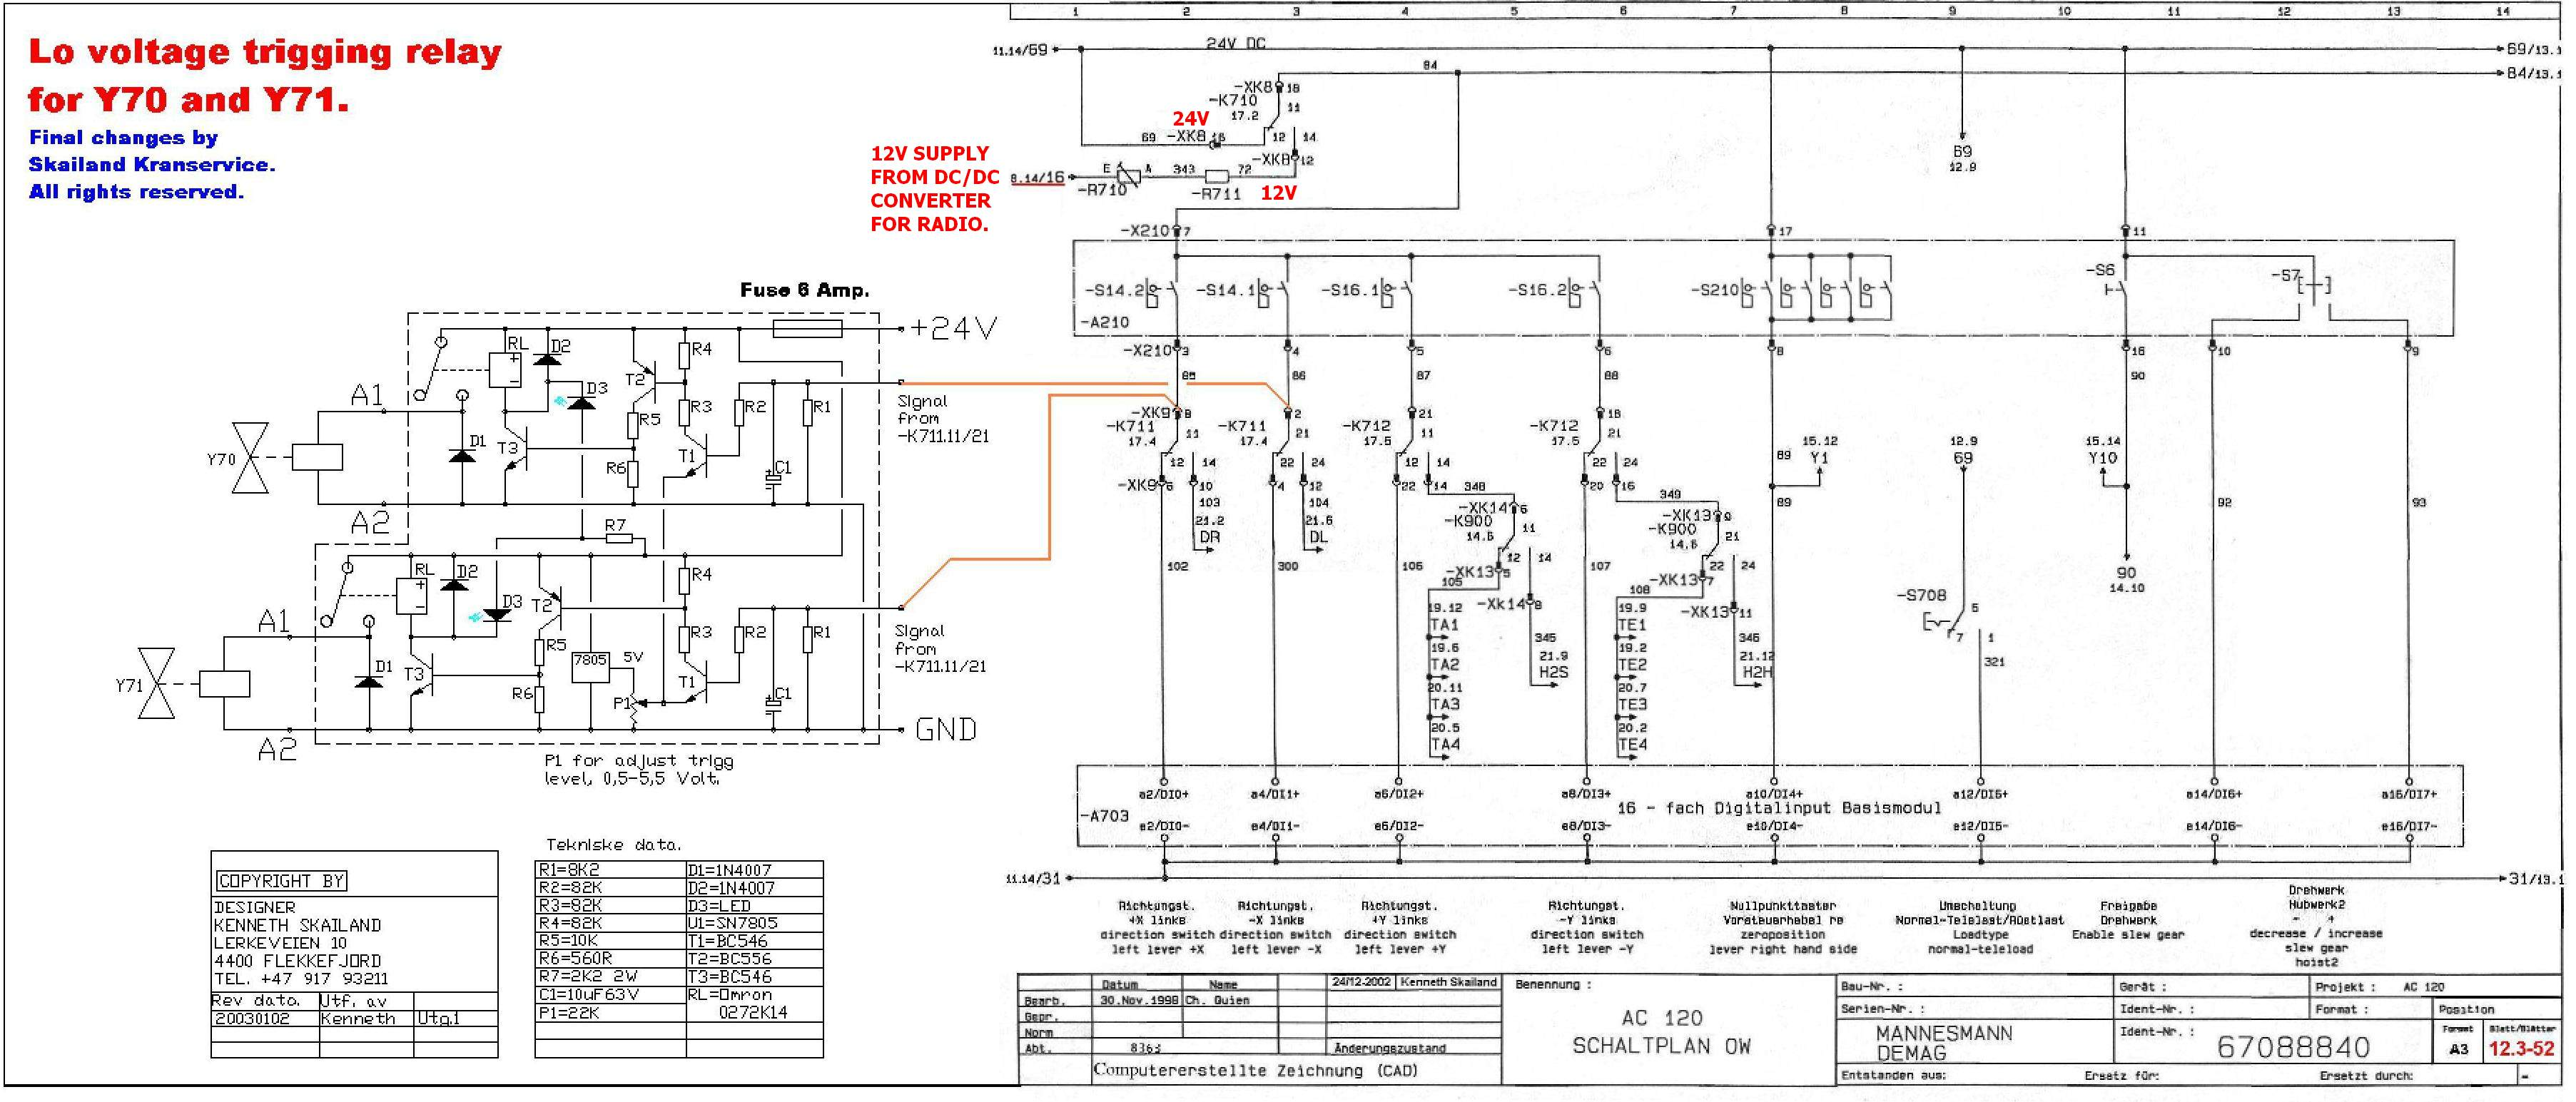 B12.3 worldwide repair of mobile cranes demag, liebherr, faun overhead crane wiring diagram pdf at n-0.co